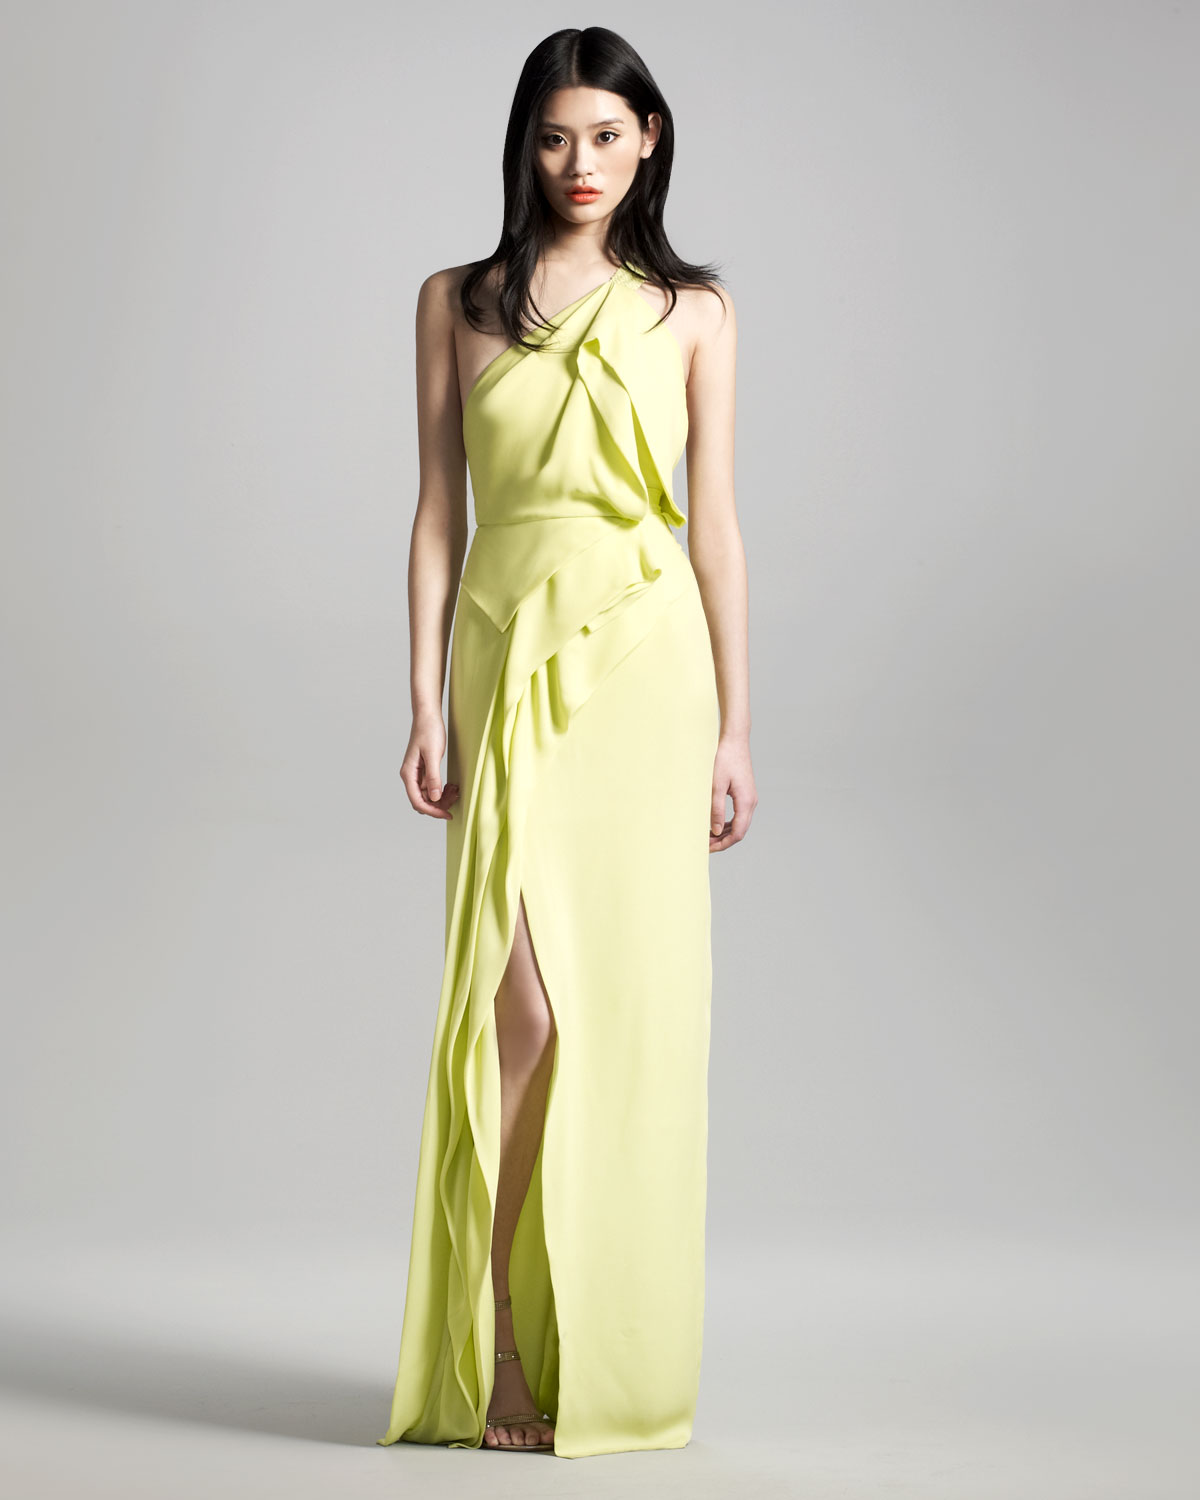 Colorful J Mendel Evening Gowns Illustration - Ball Gown Wedding ...